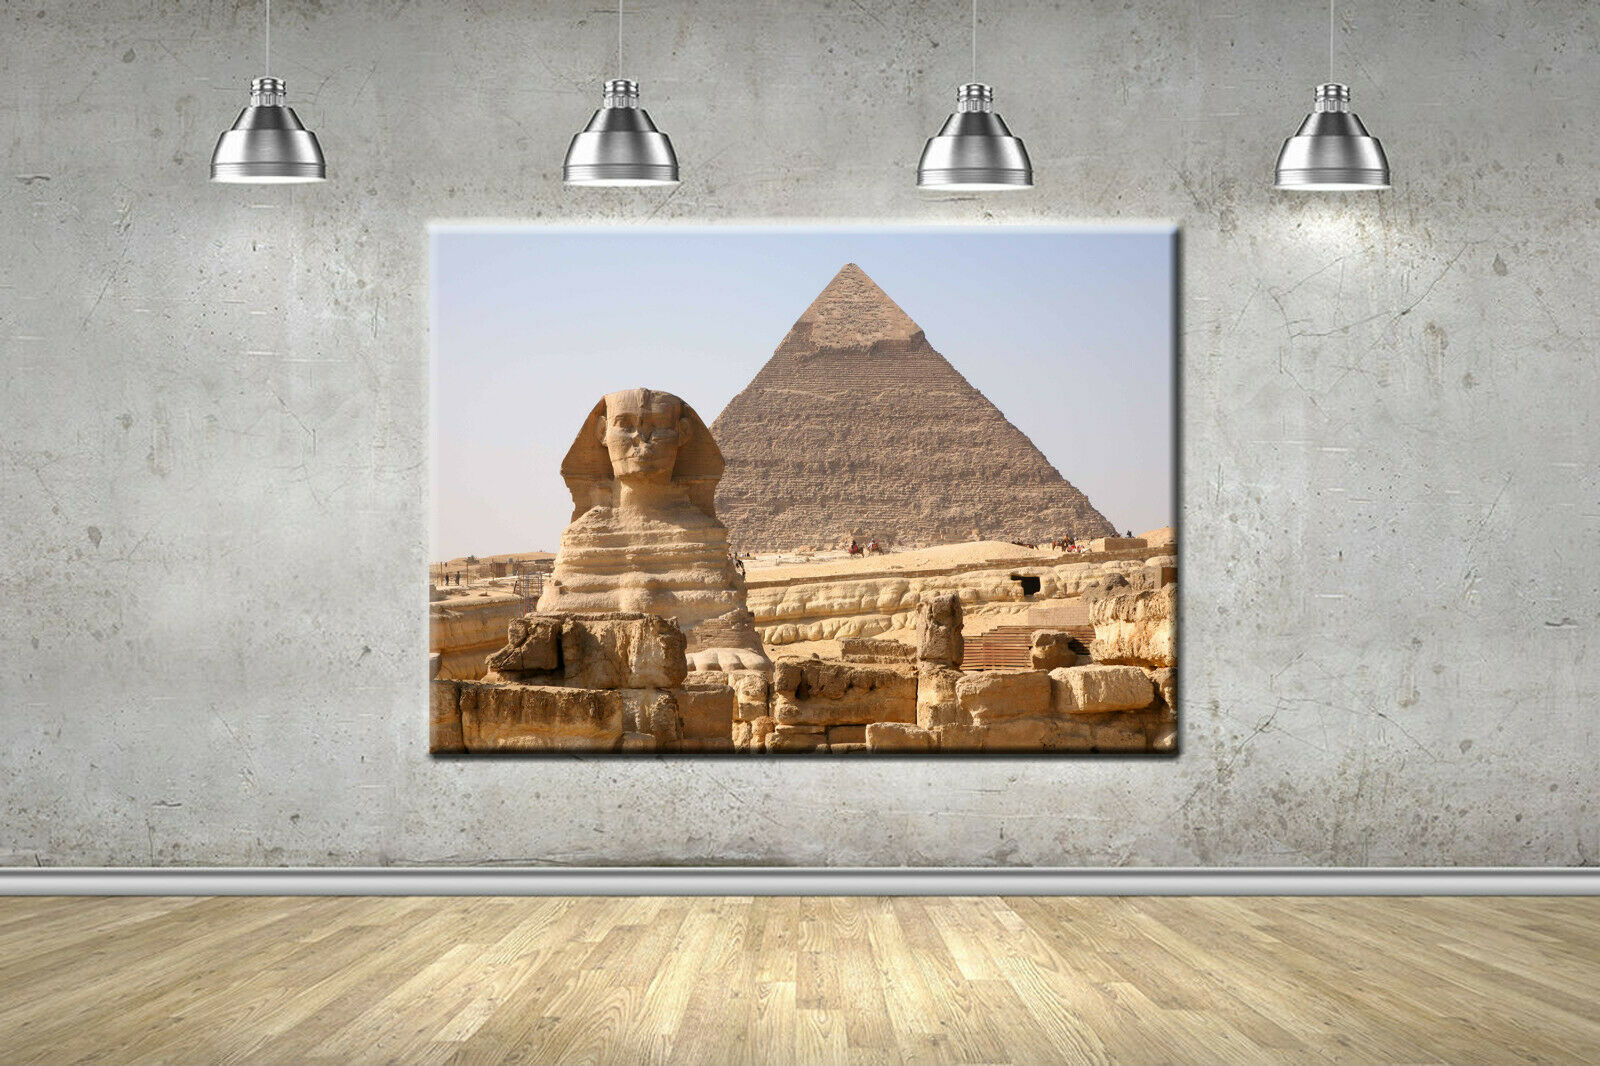 Egypt Pyramids Scenic Frame Canvas Photo Wall Art Picture Home Decor Poster